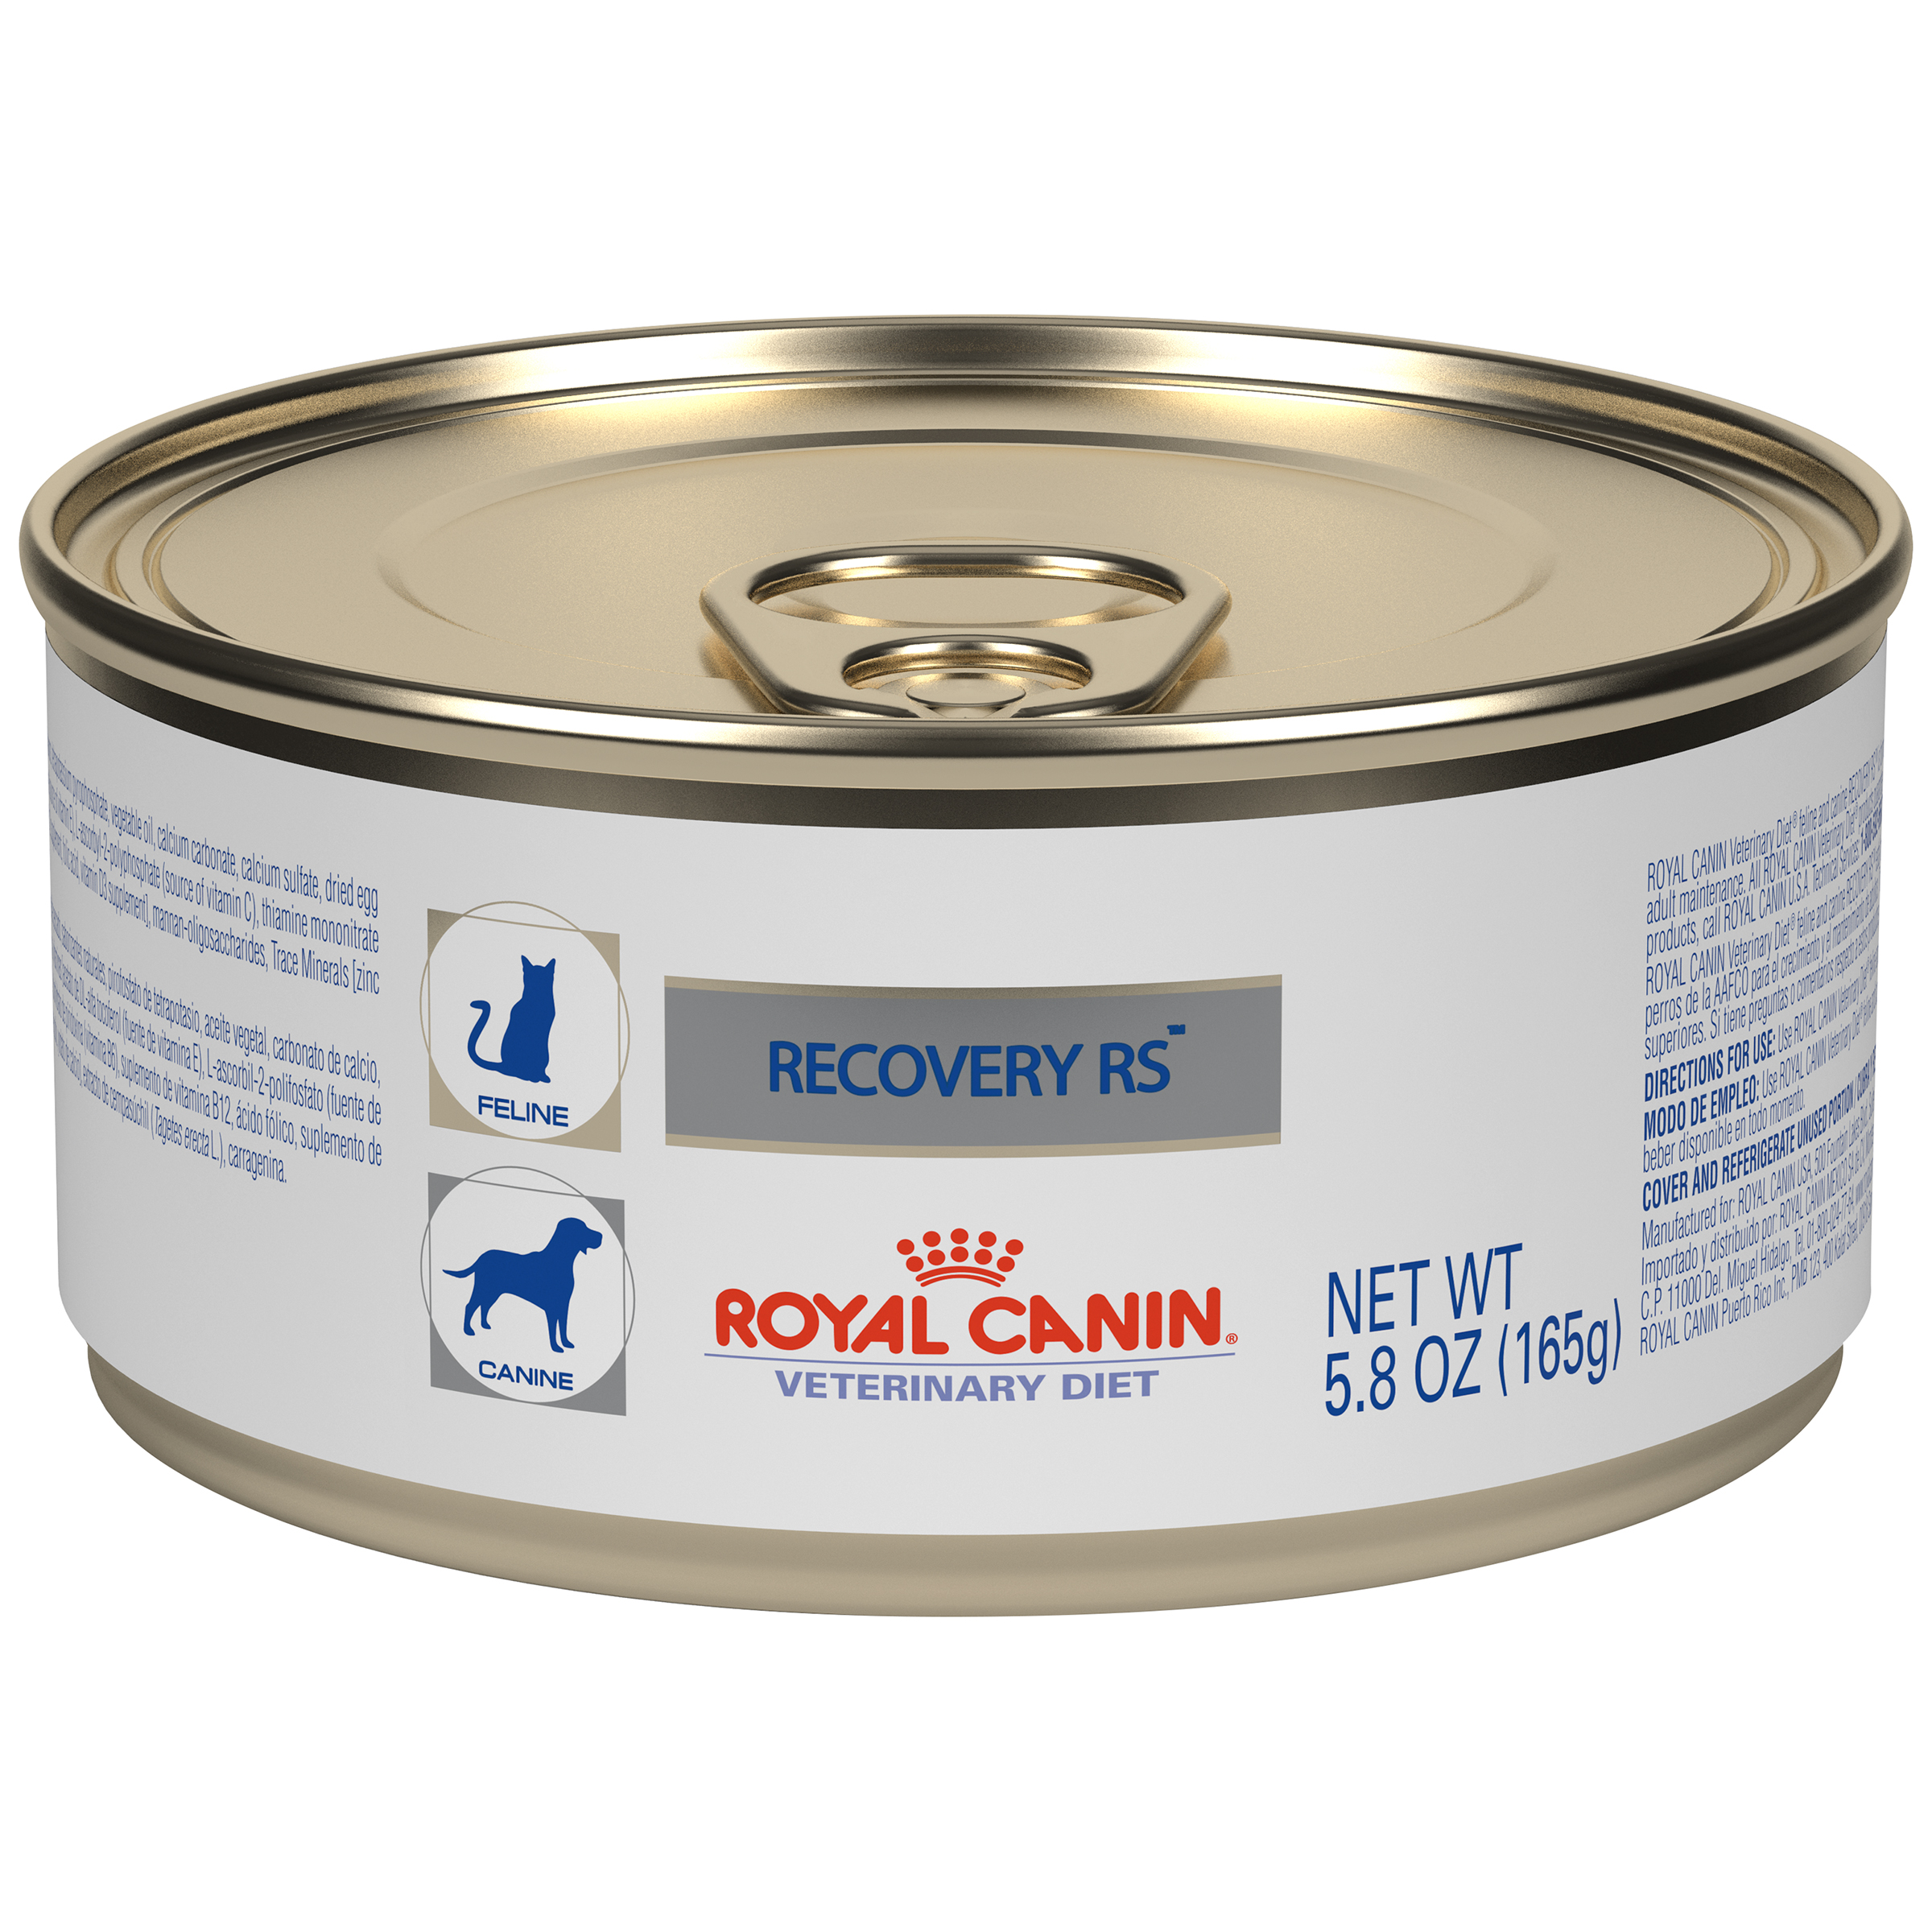 Royal Canin Veterinary Diet Feline And Canine Recovery Rs Canned Cat and Dog Food